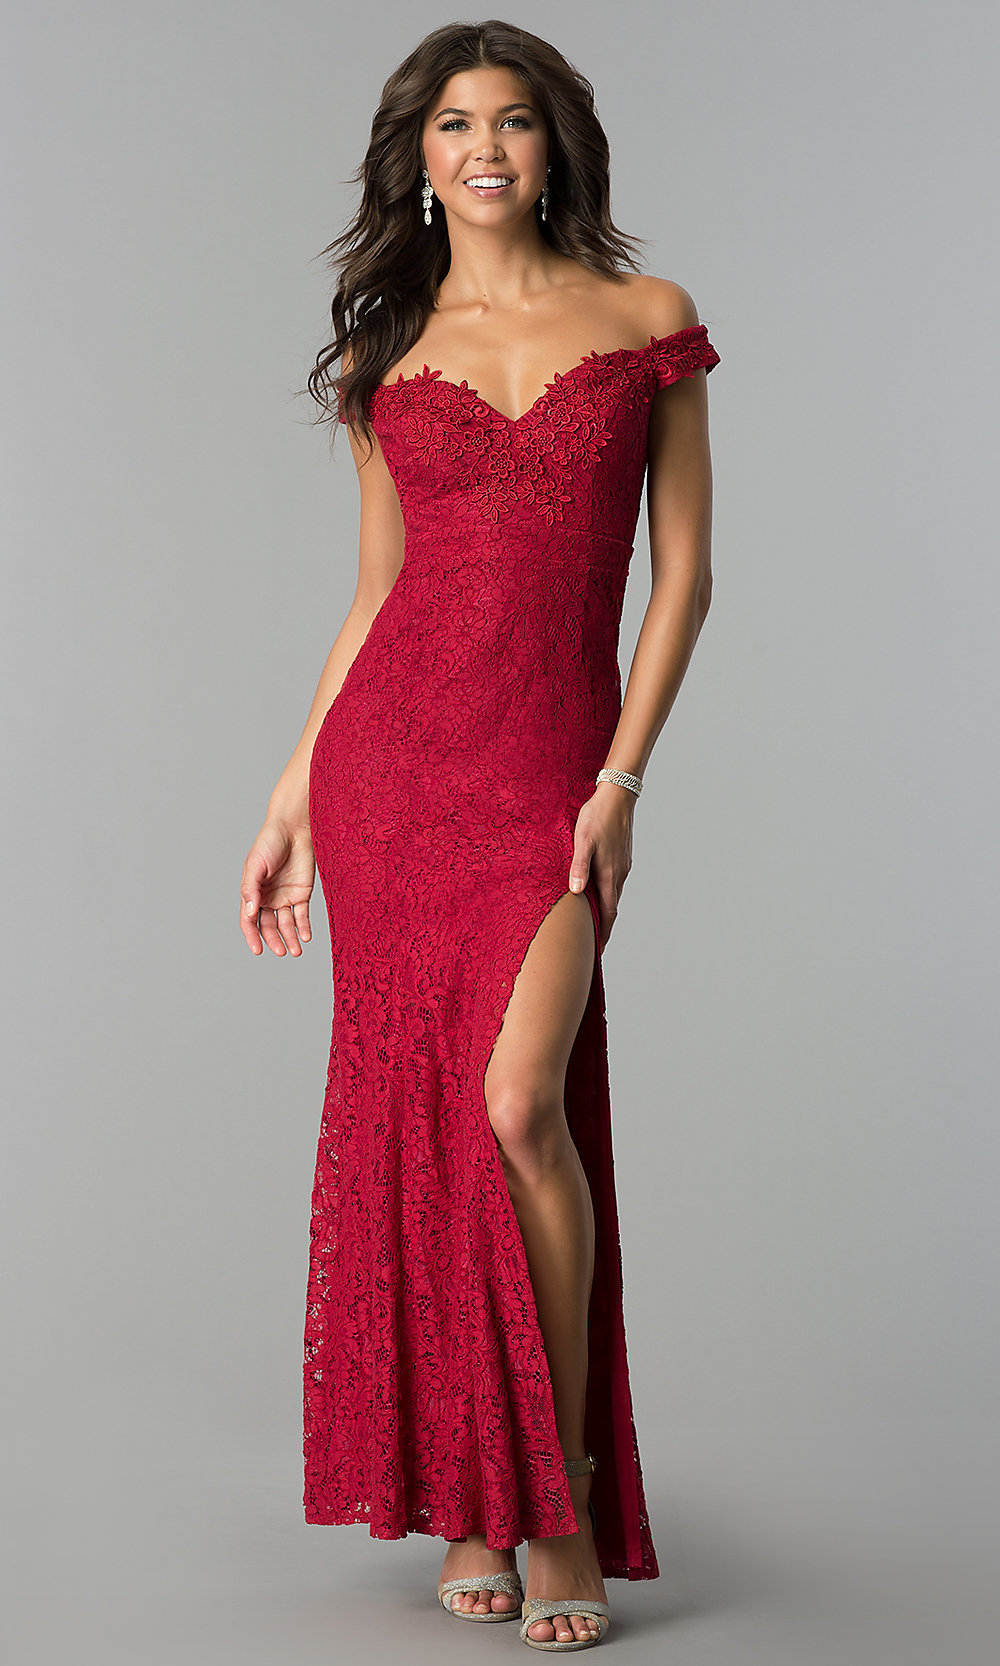 Long Lace Off-the-Shoulder Prom Dress - PromGirl